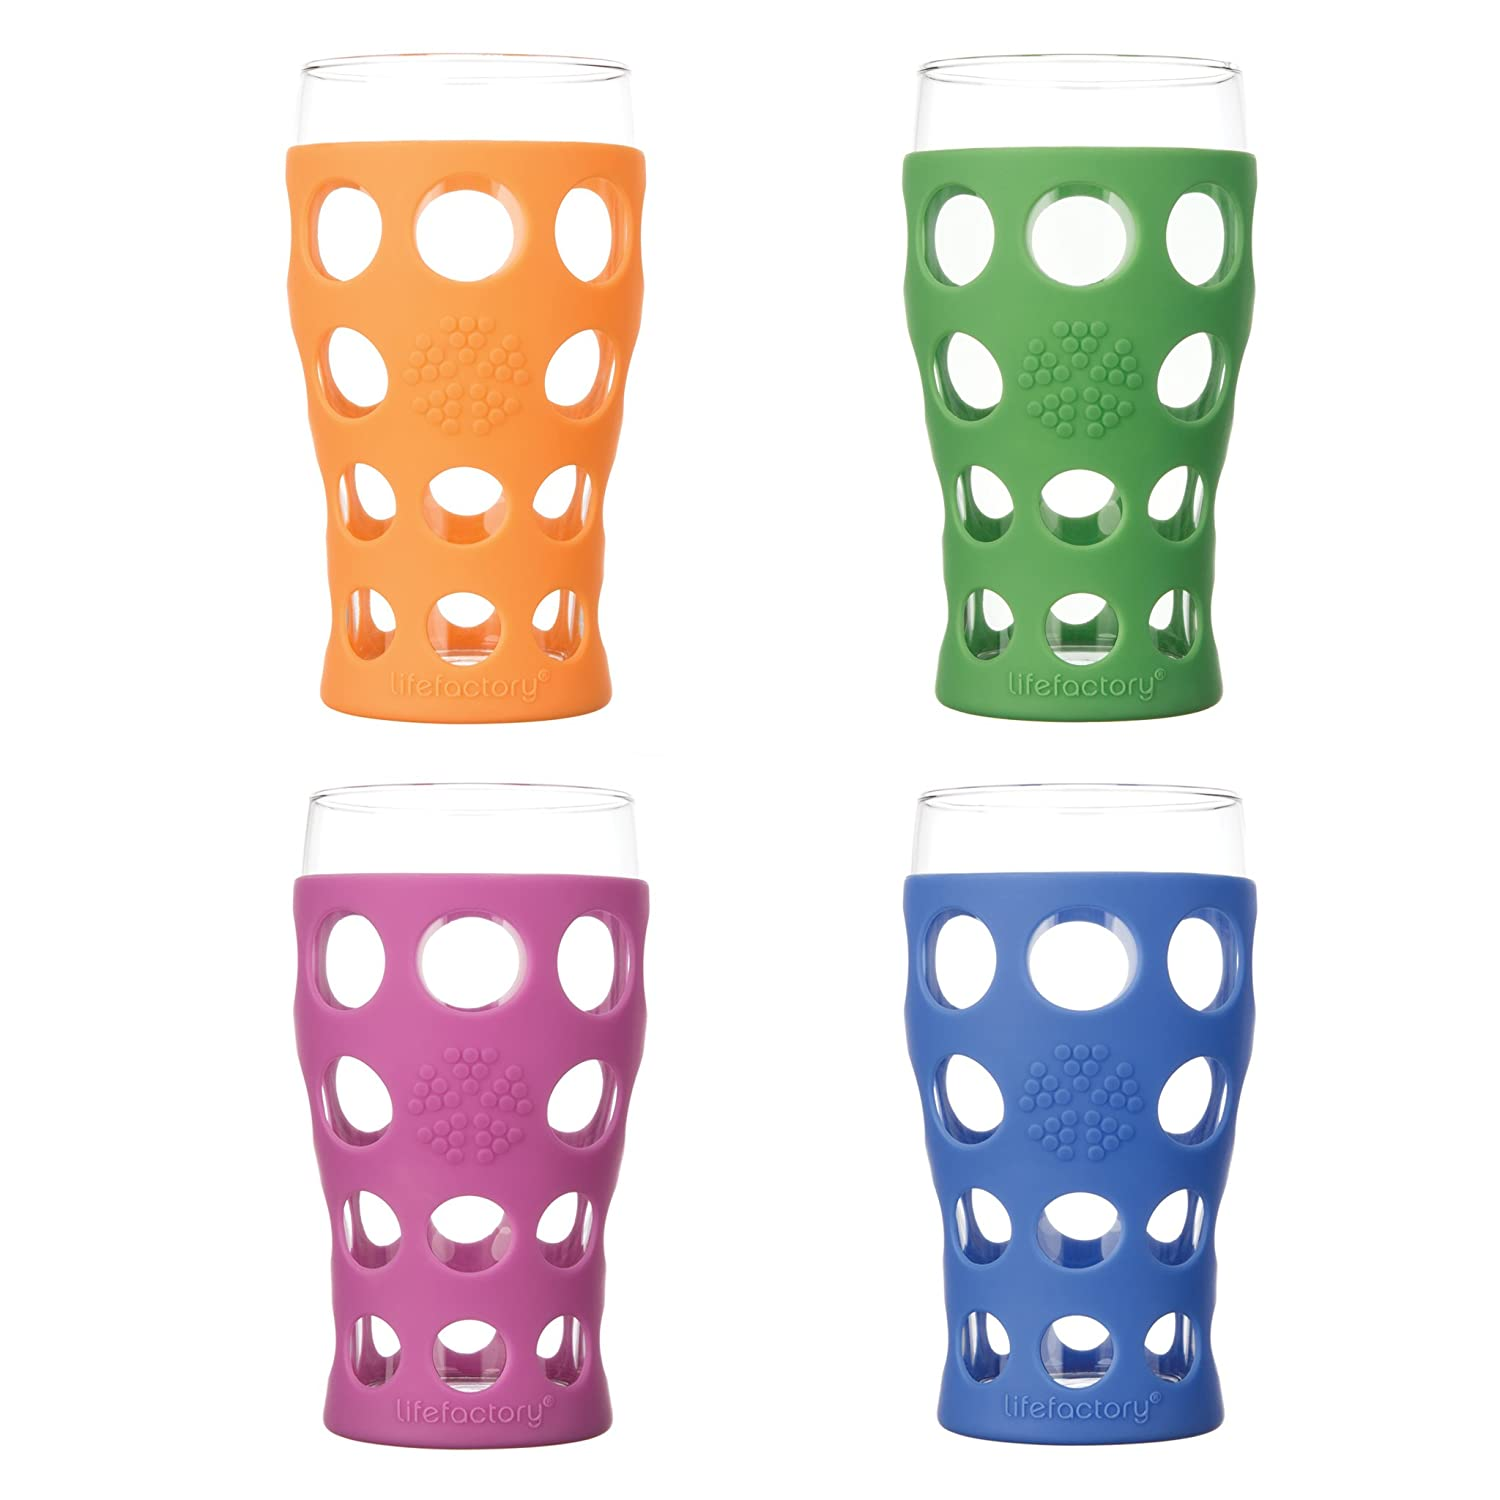 Lifefactory LF340400C4 BPA-Free Glassware 4-Pack withProtective Silicone Sleeve Indoor and Outdoor Wine Glas 20 oz Multicolor